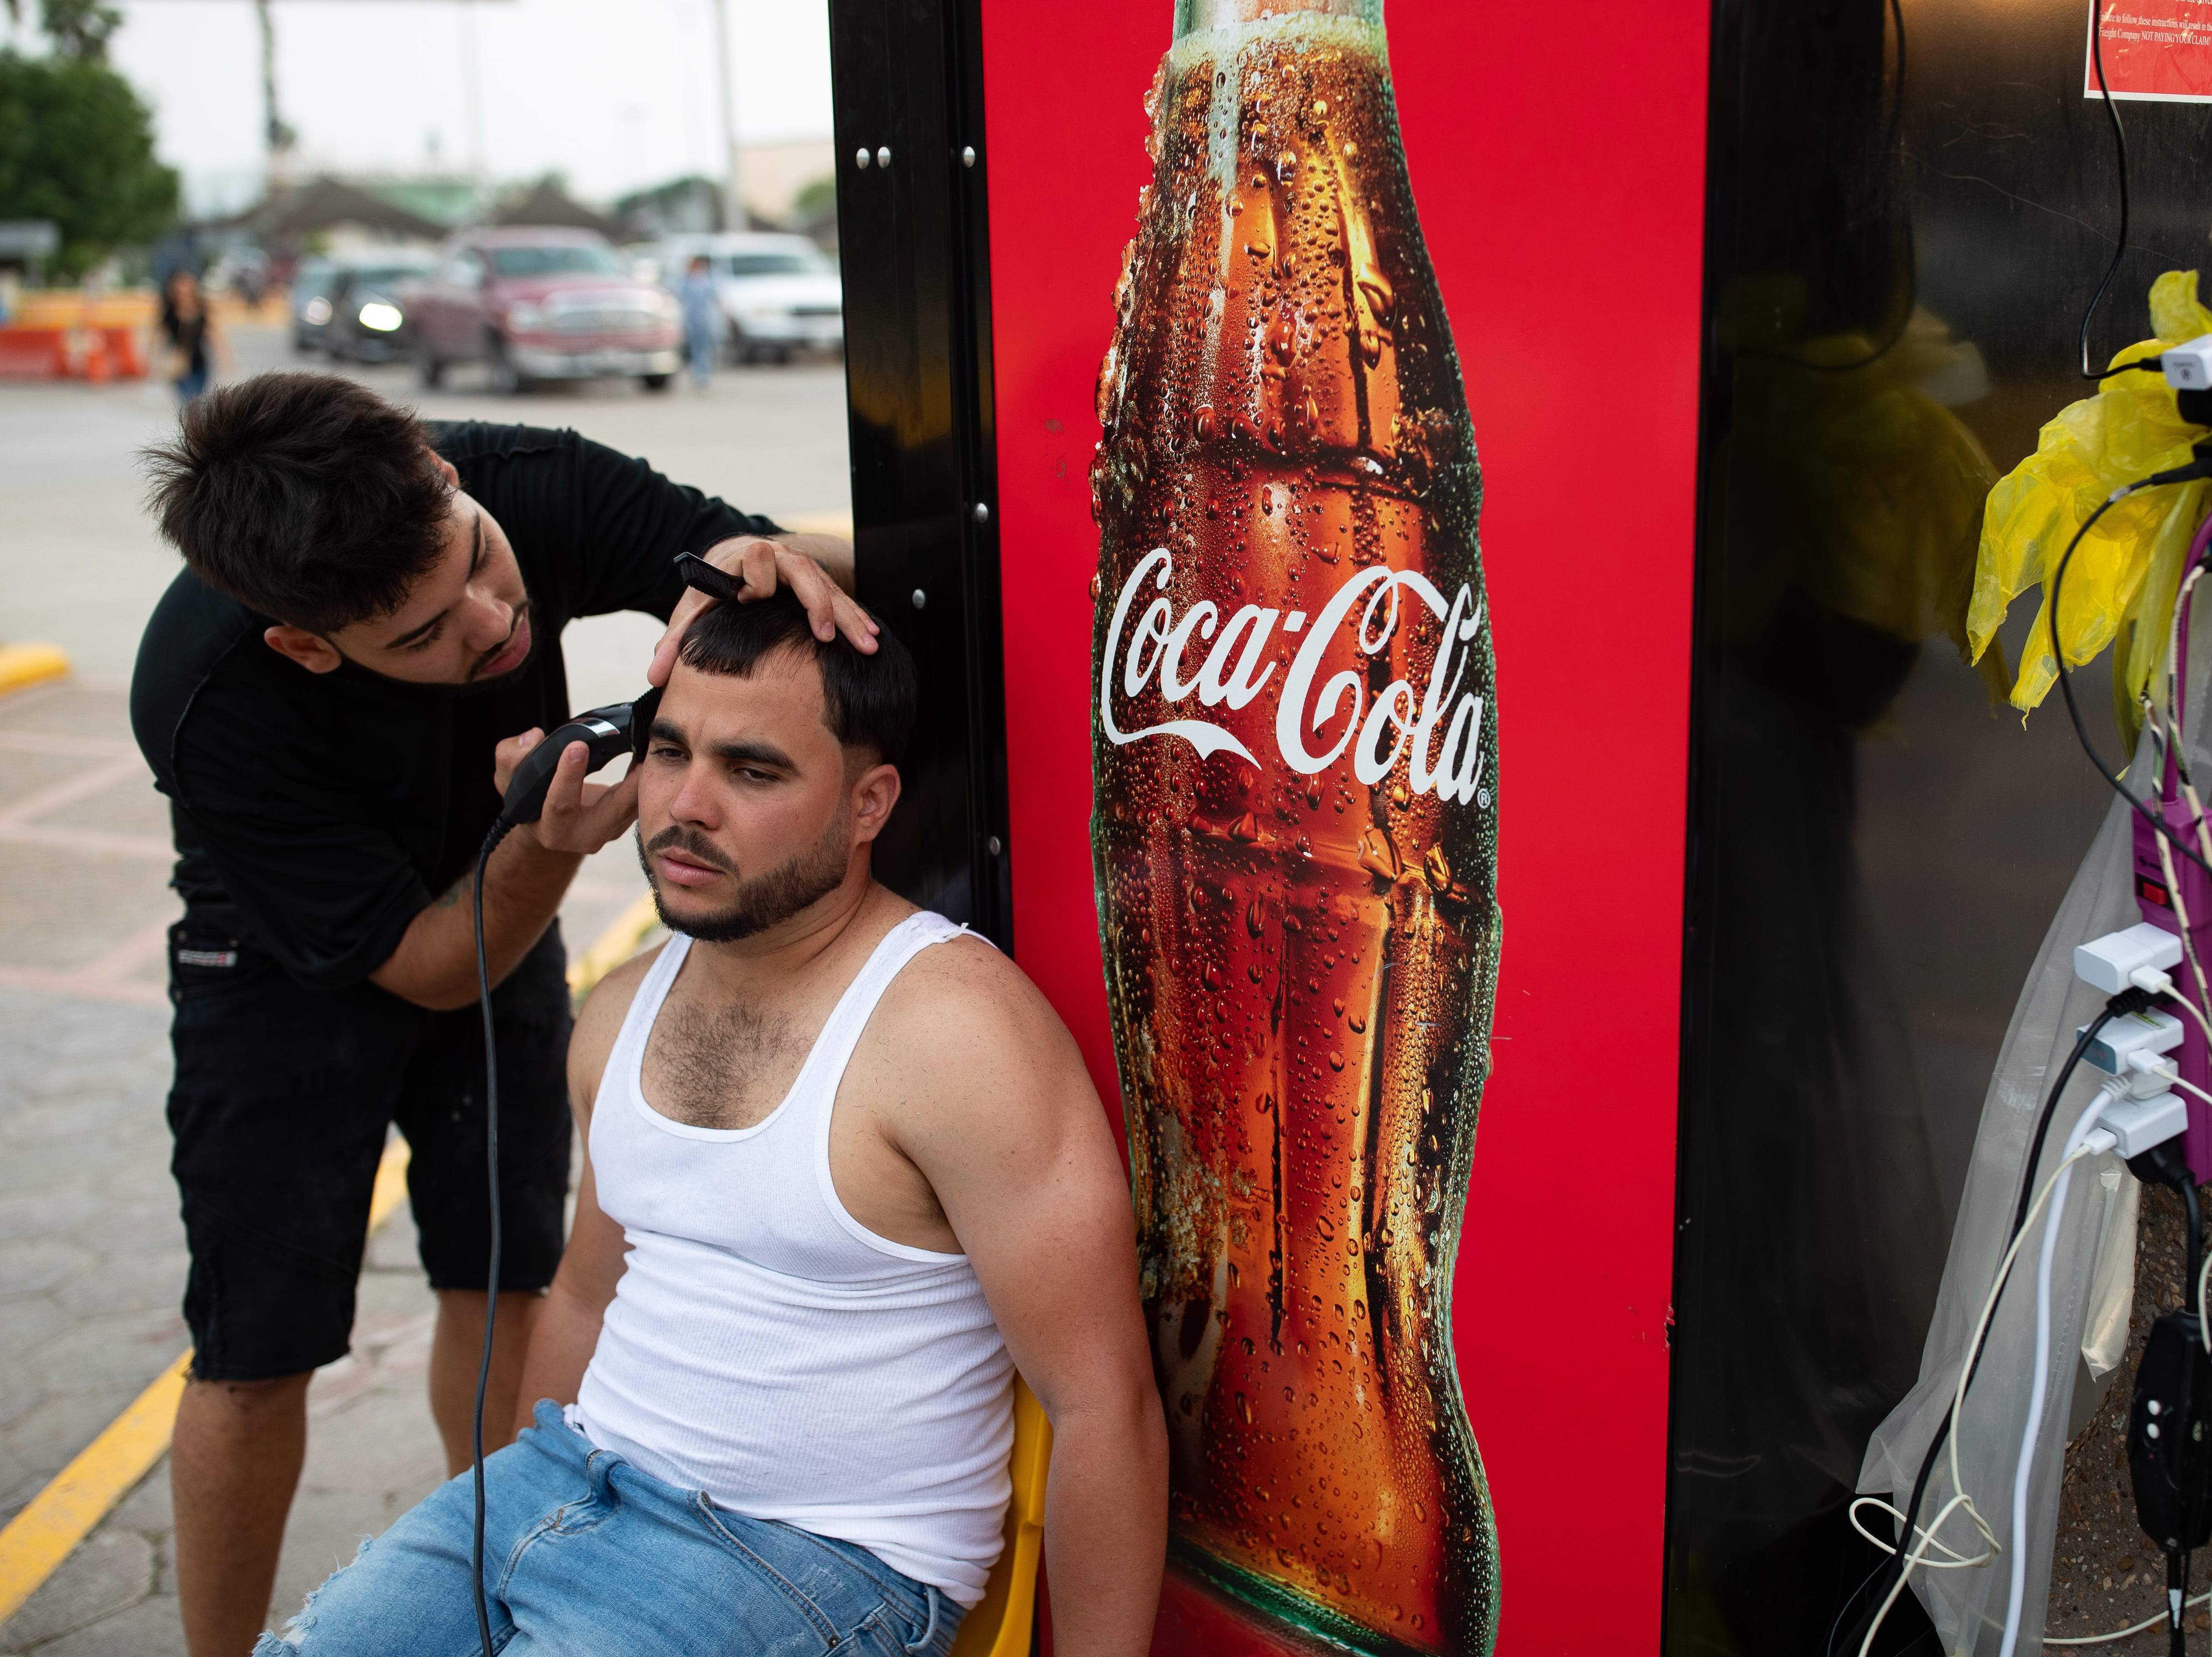 Central American migrants cut each others' hair using power from a light post as they wait to seek asylum in the U.S in a makeshift camp next to the international bridge in Matamoros, Mexico on Thursday, April 4, 2019.